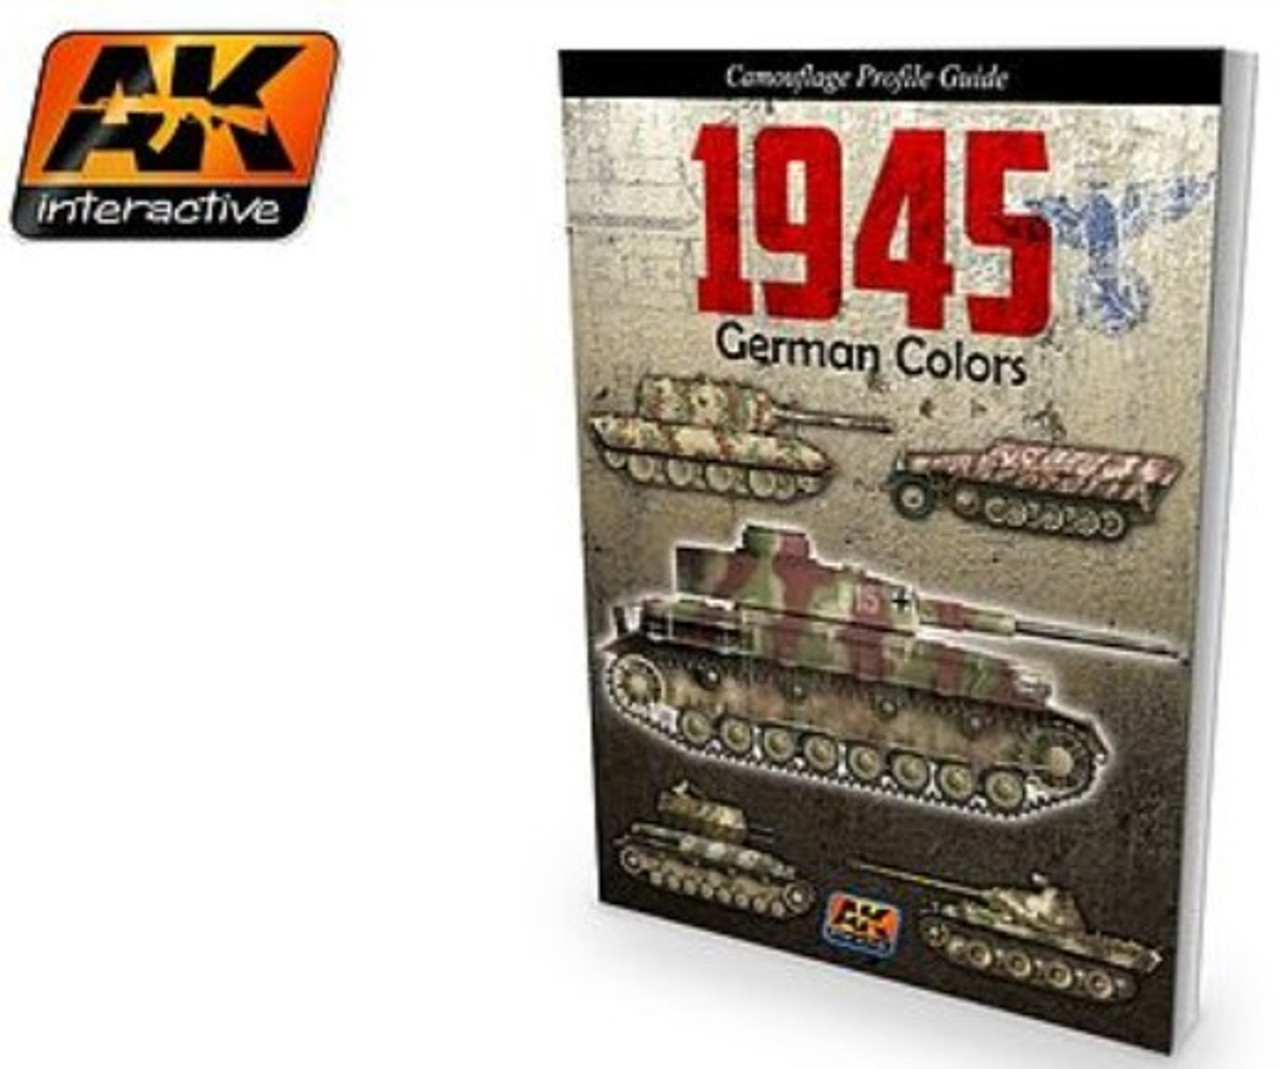 1945 German Colors Camouflage Profile Guide Book